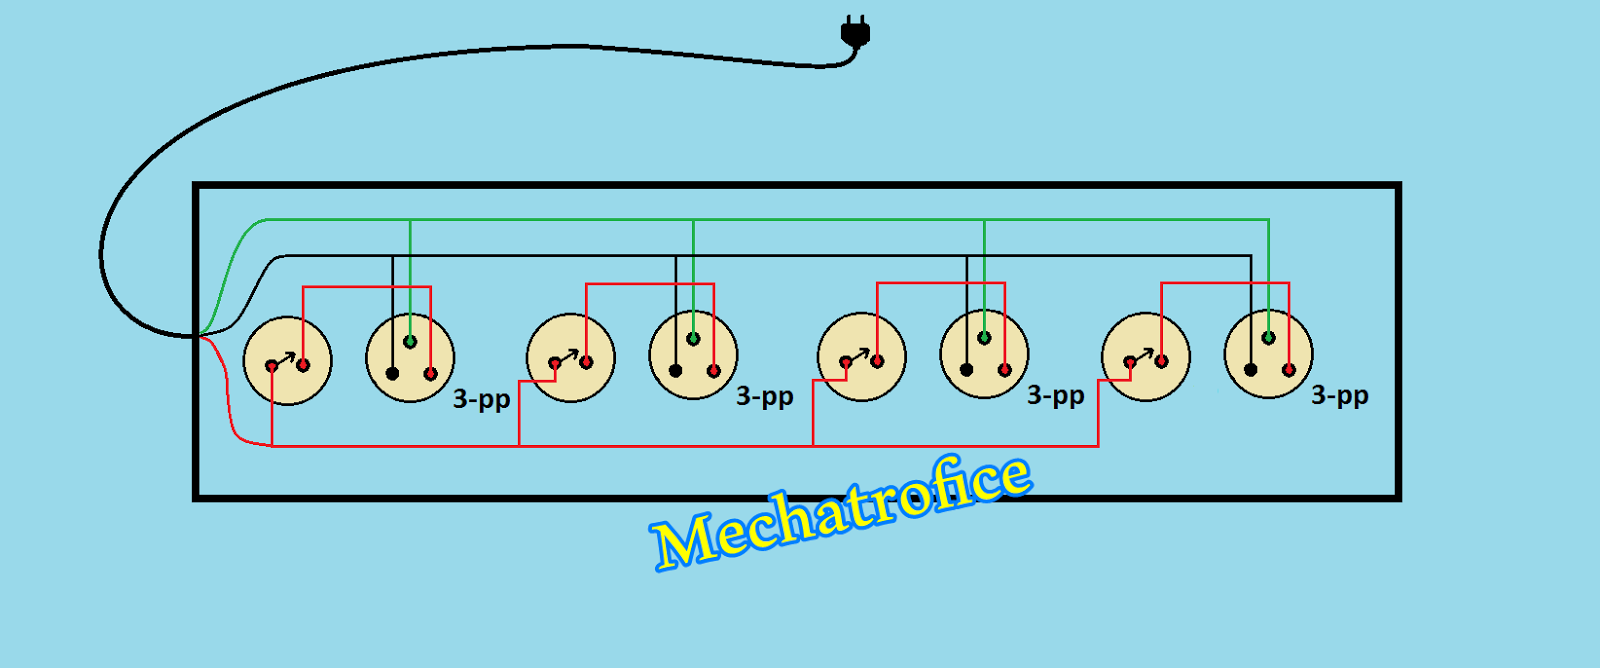 extension schematic wiring diagram yv 3457  drop cord electrical wiring diagrams  drop cord electrical wiring diagrams